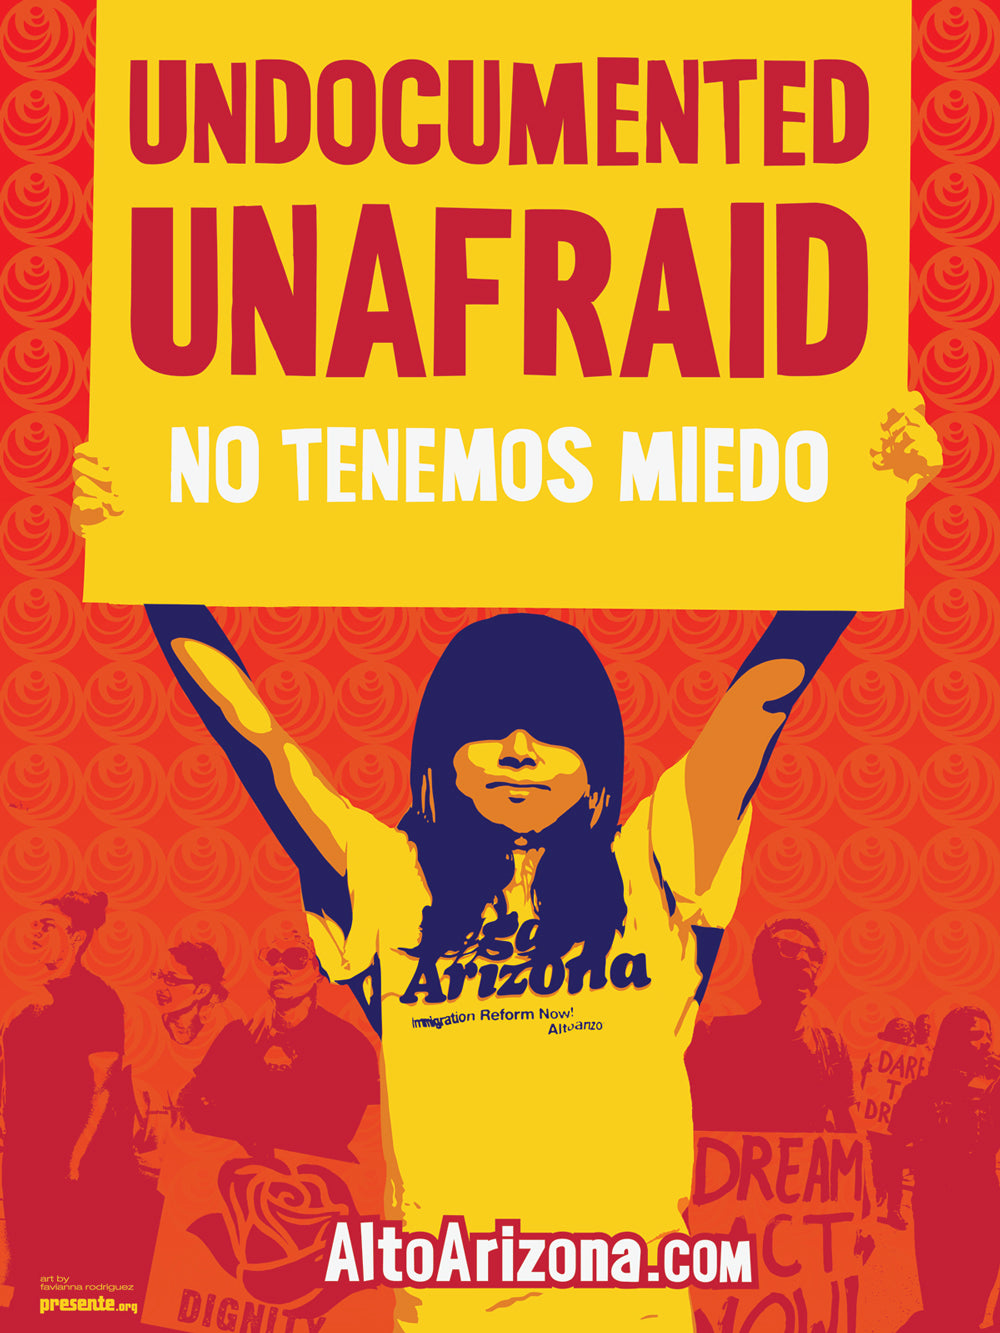 Undocumented. Unafraid.